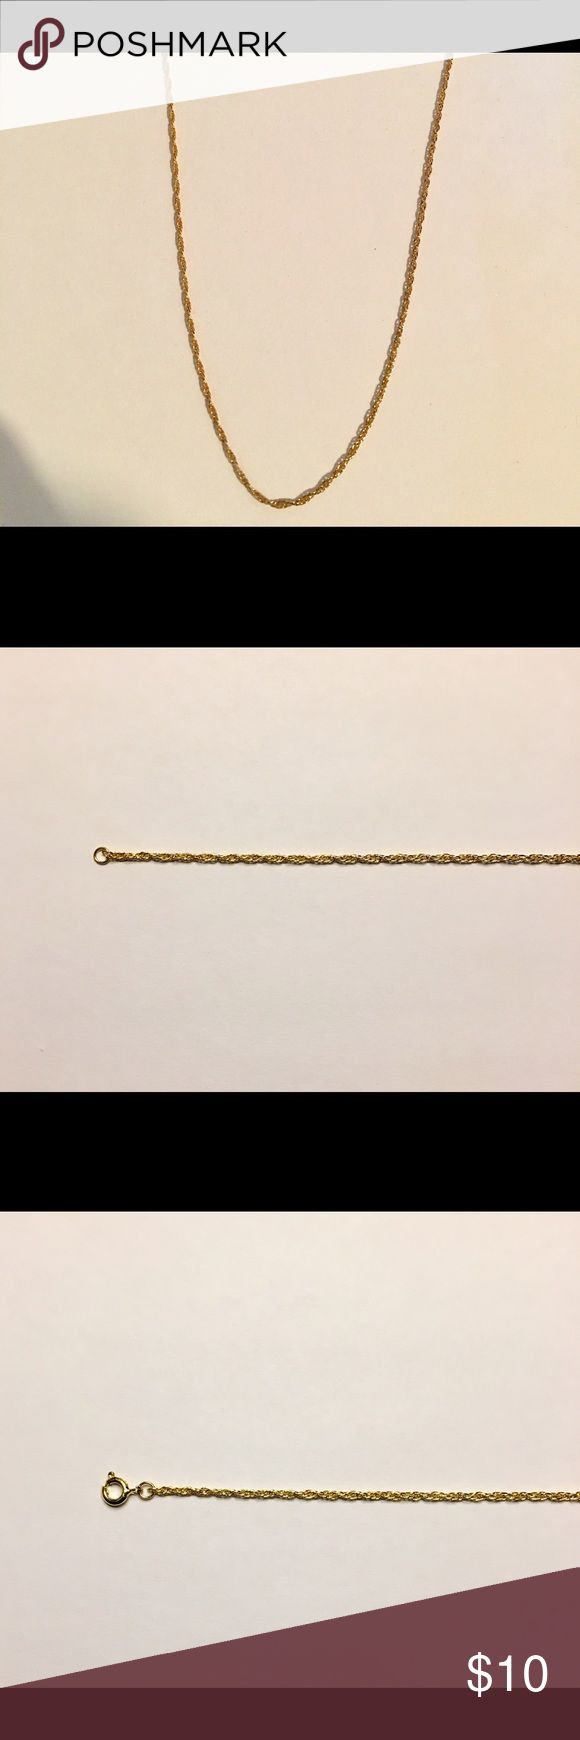 Gold Chain 14k gold 18 in 3mm RopeChain High quality 14k gold filled rope chain Chain is: • 3mm in width/thickness. • 18 inches long. • Gold filled with real gold. Gold filled is more valuable then plating and does not fade away or tarnish like plating. • High quality and durable. Able to carry a small pendent piece if you so desire. Chain will be:  • Packaged well and handled with care. • Shipped within the same or 1 day • Delivered in 2-3 business days of being shipped. Jewelry Necklaces